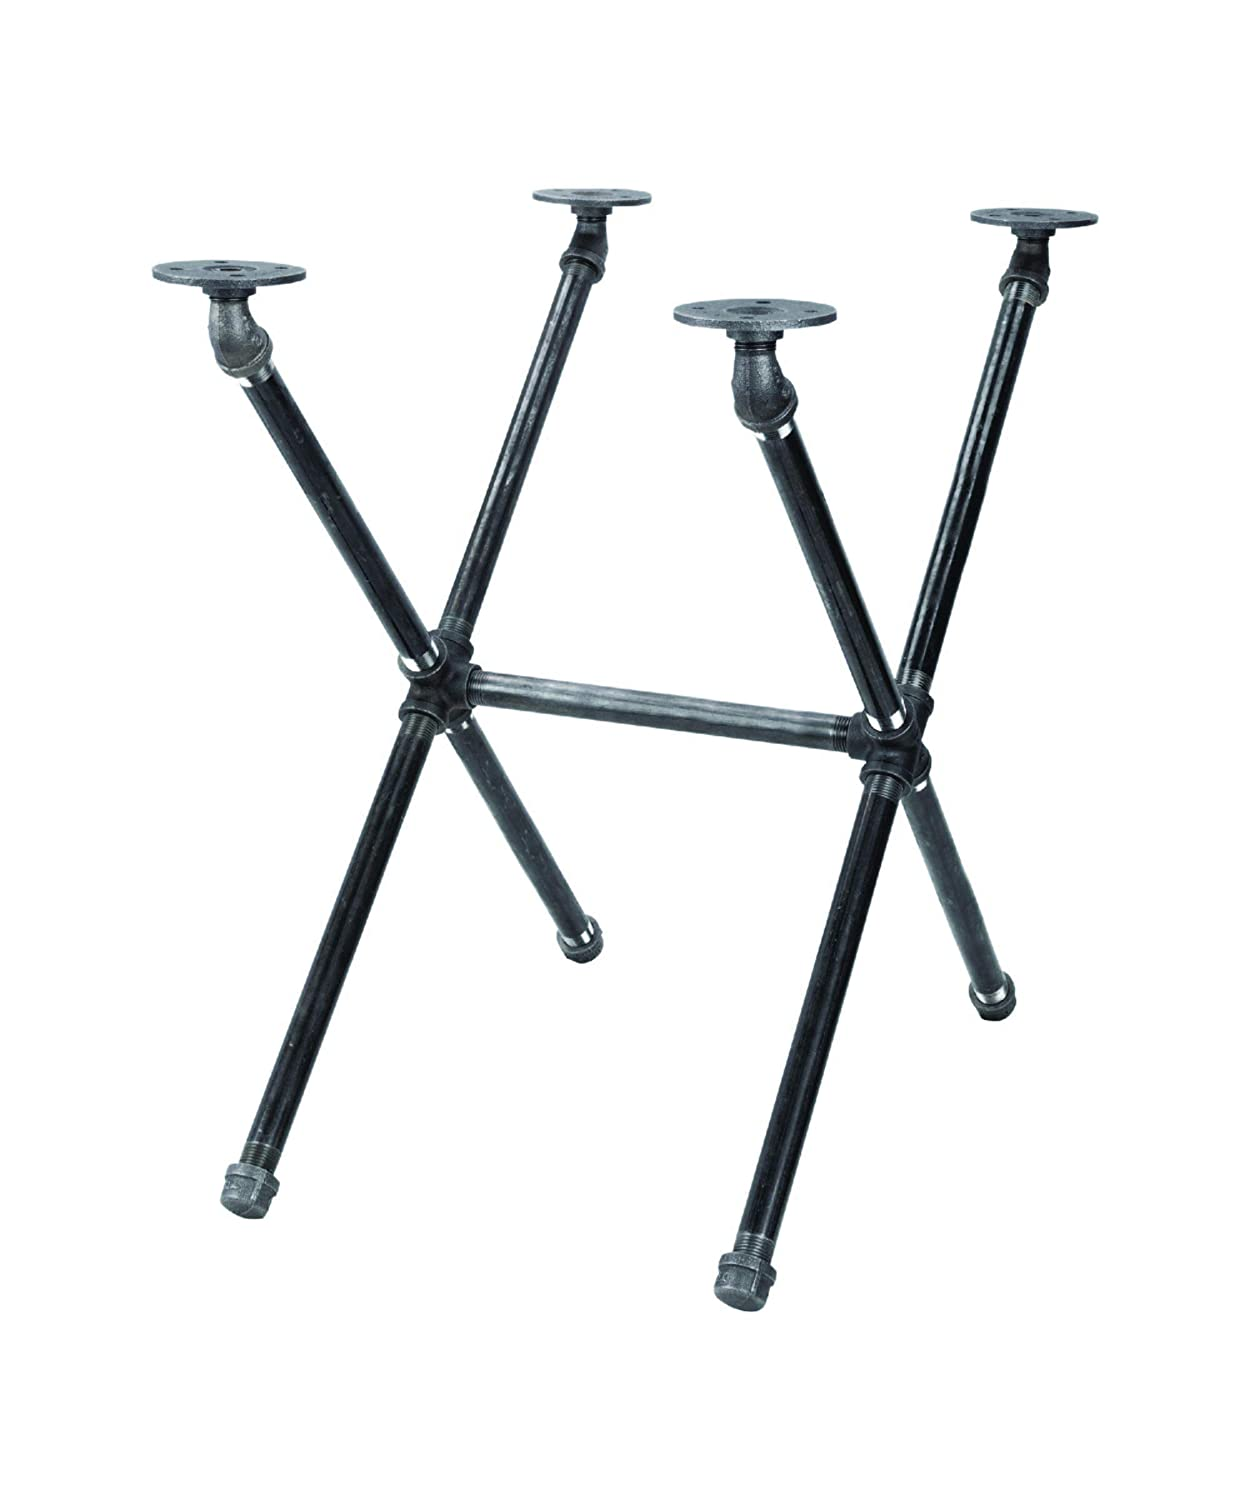 Industrial Pipe Decor Table Leg Set, Rustic End Table Side Table Base Kit, Dark Grey/Black Steel Metal Pipes Vintage Furniture Decorations DIY Coffee Table Legs Mid Century Modern, Crisscross Style